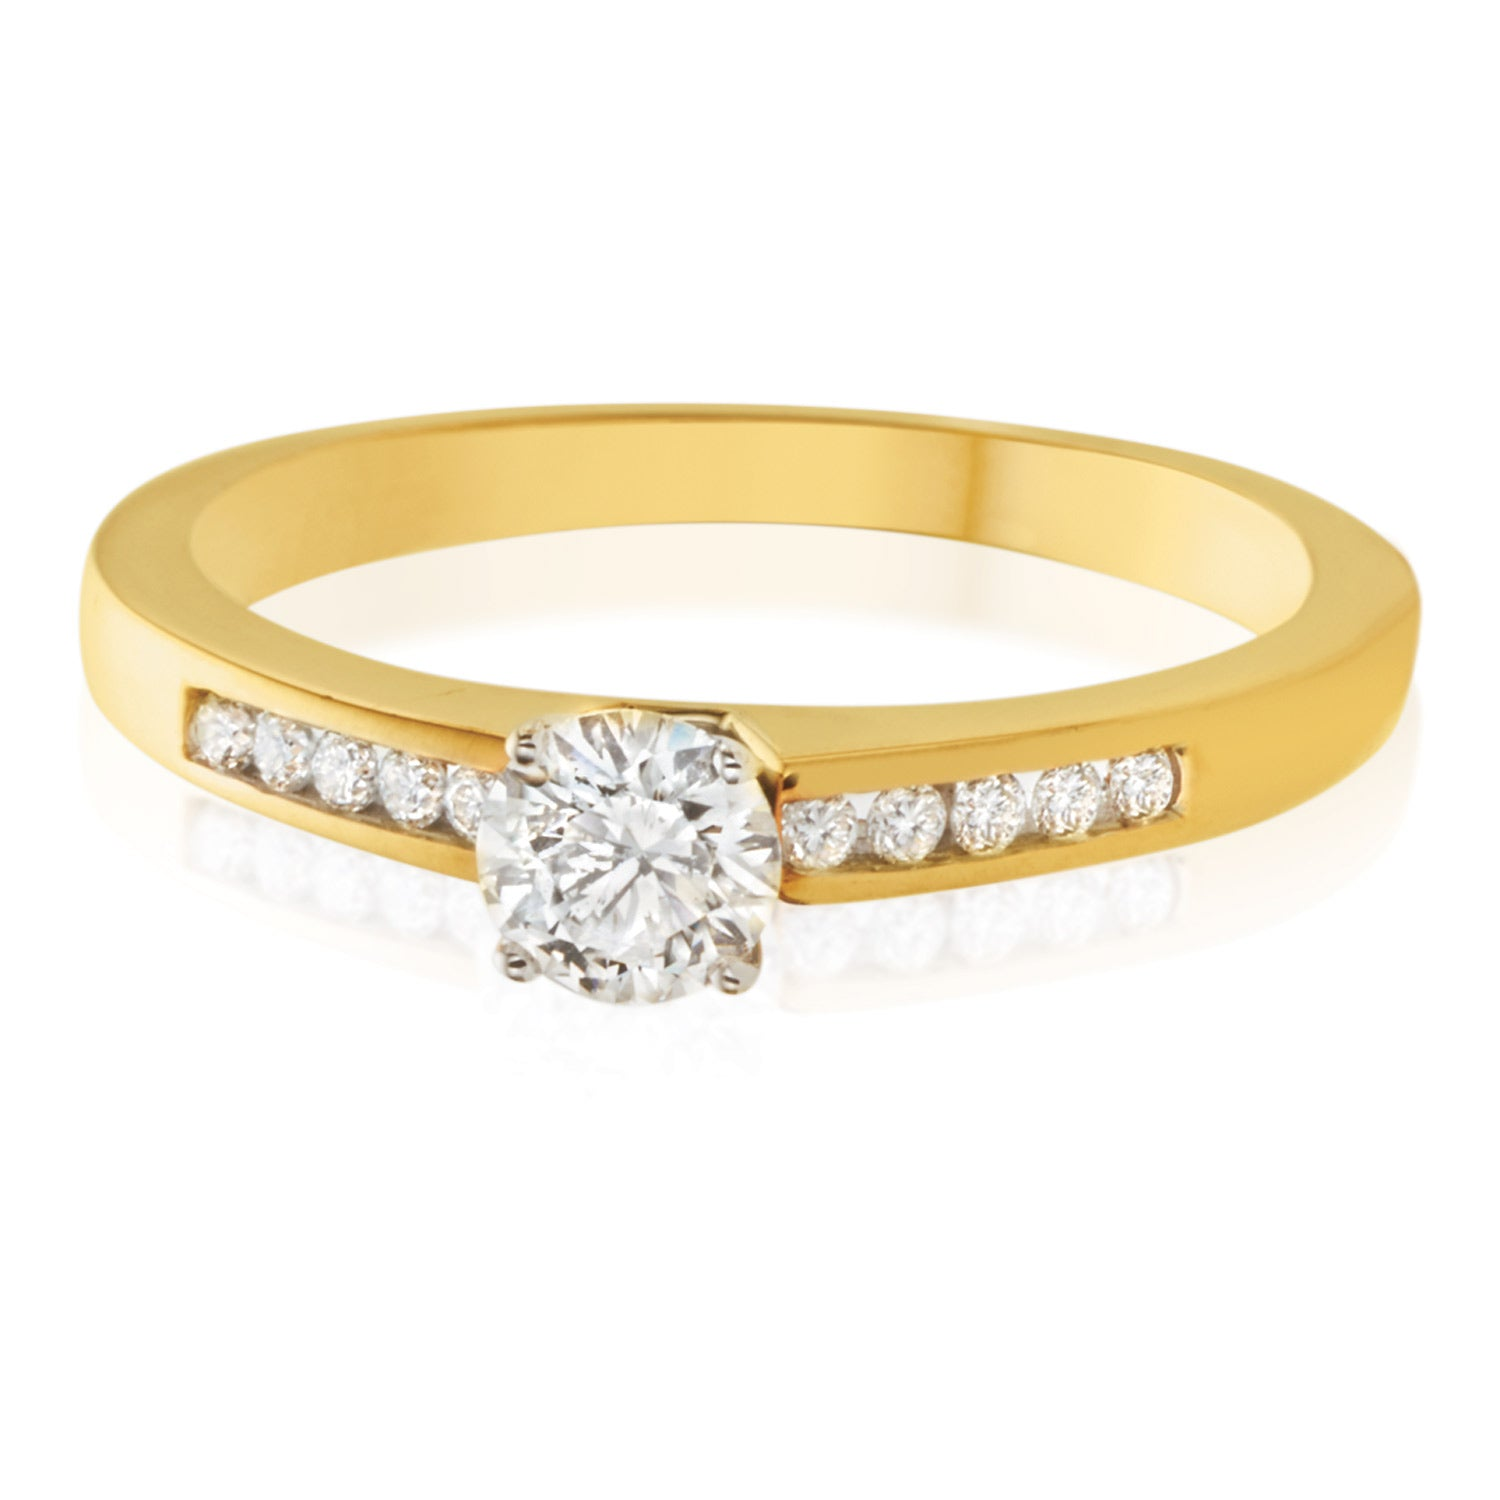 18ct Two Tone Gold Round Brilliant Cut with 1/2 CARAT tw of Diamonds